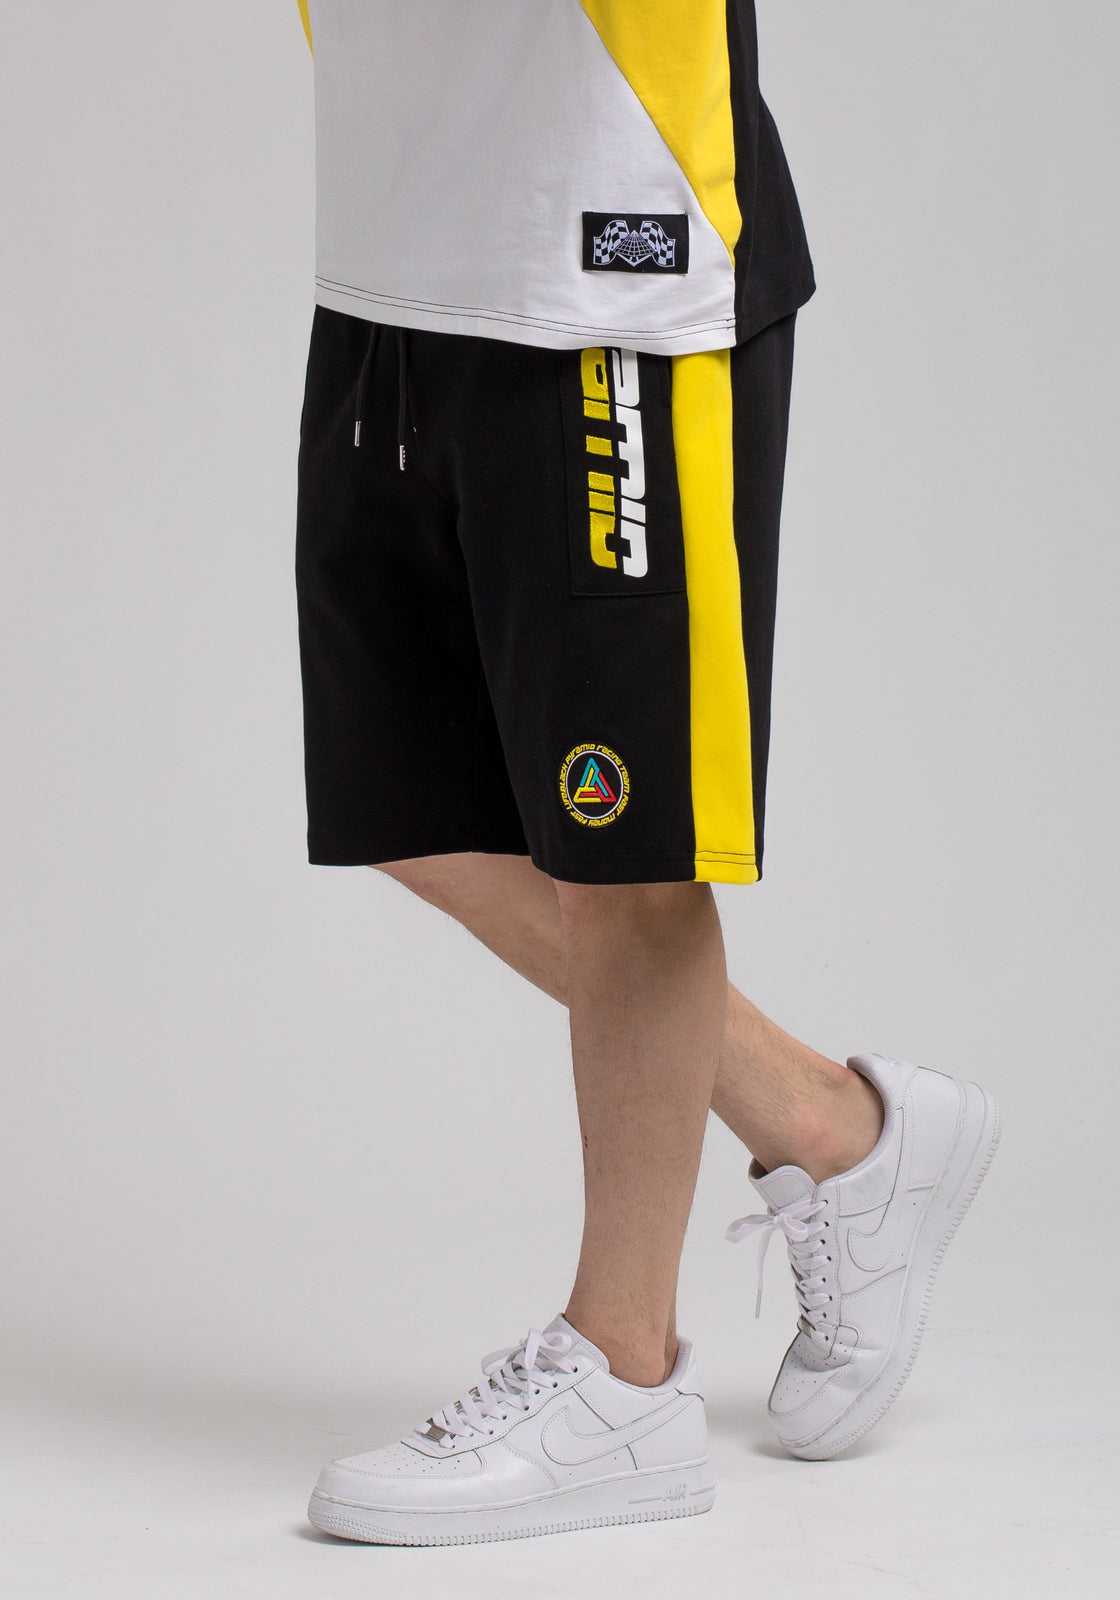 Racing Team Shorts - Color: Black